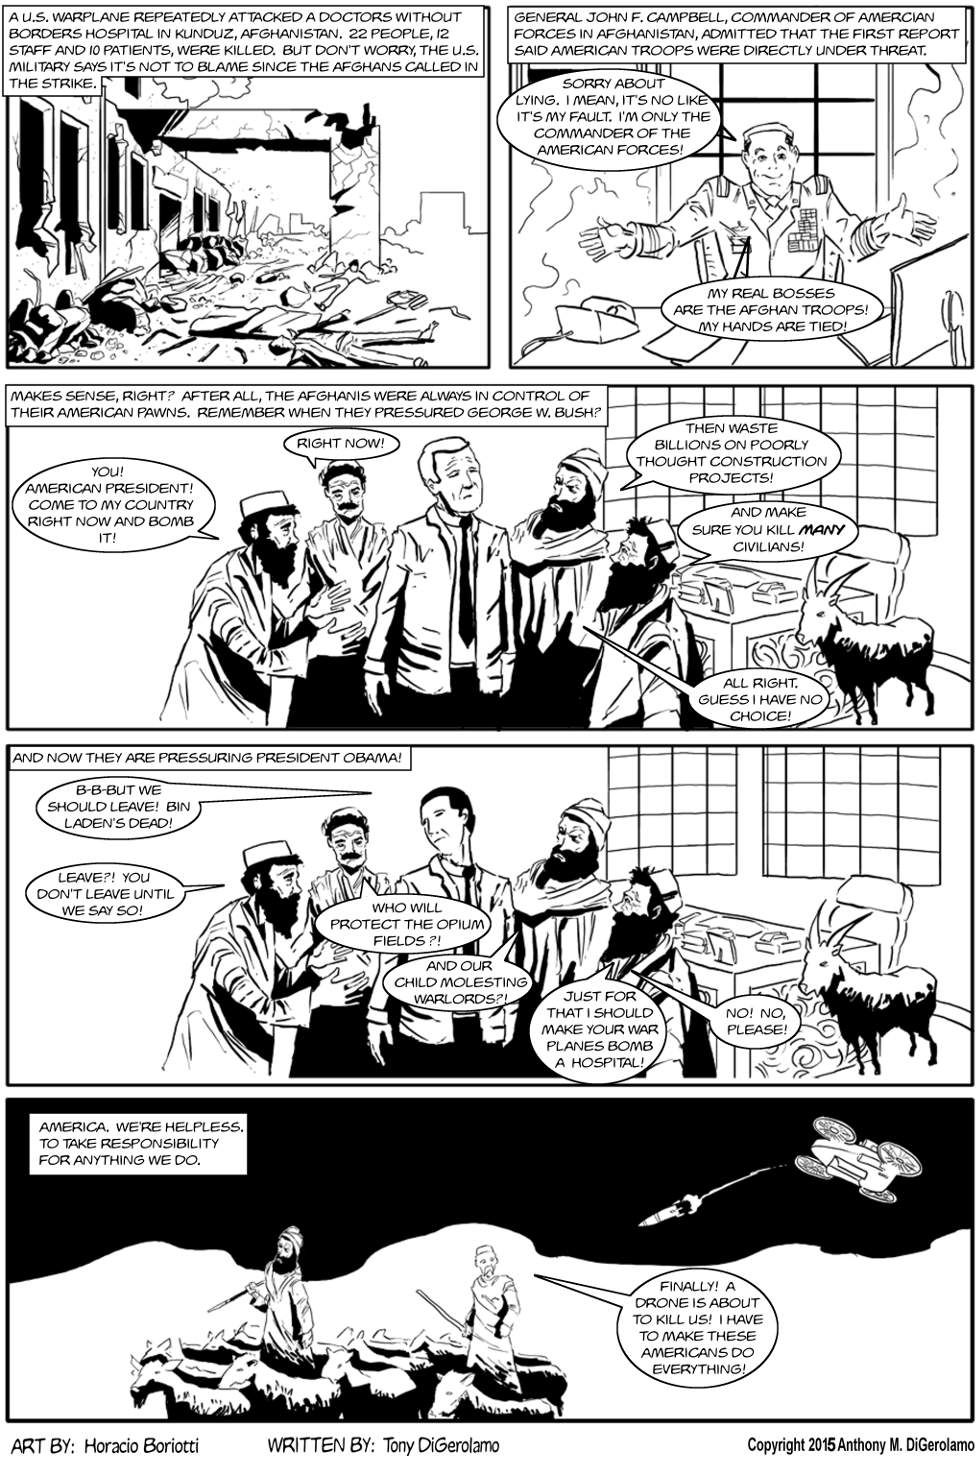 The Antiwar Comic:  The Real Bosses